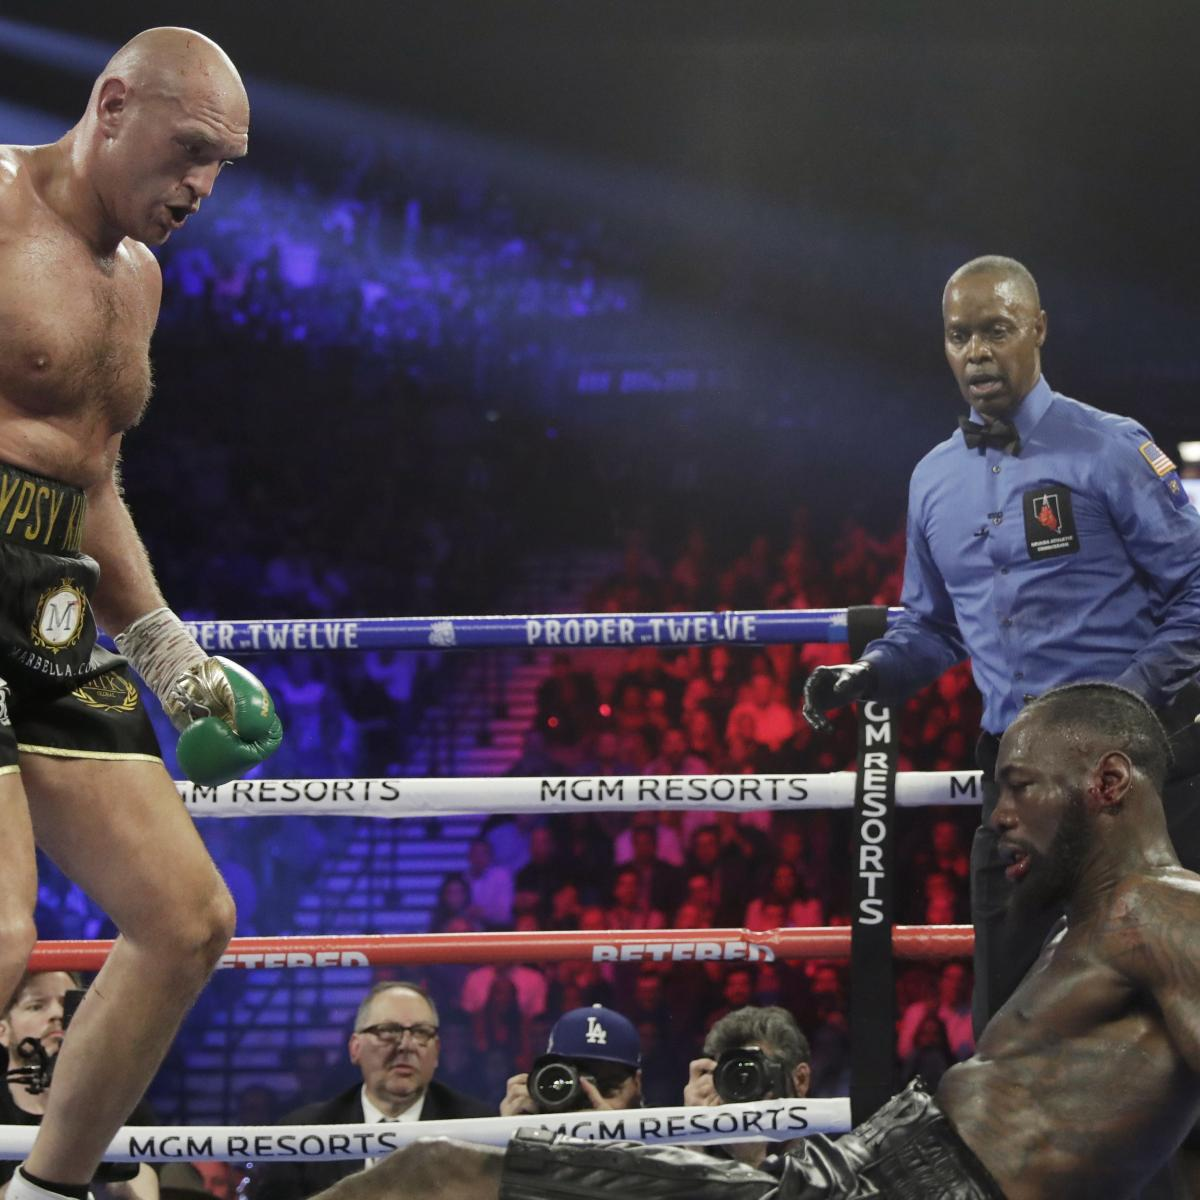 Deontay Wilder Wishes His Corner Hadn't Stopped Fight in TKO Loss to Tyson Fury